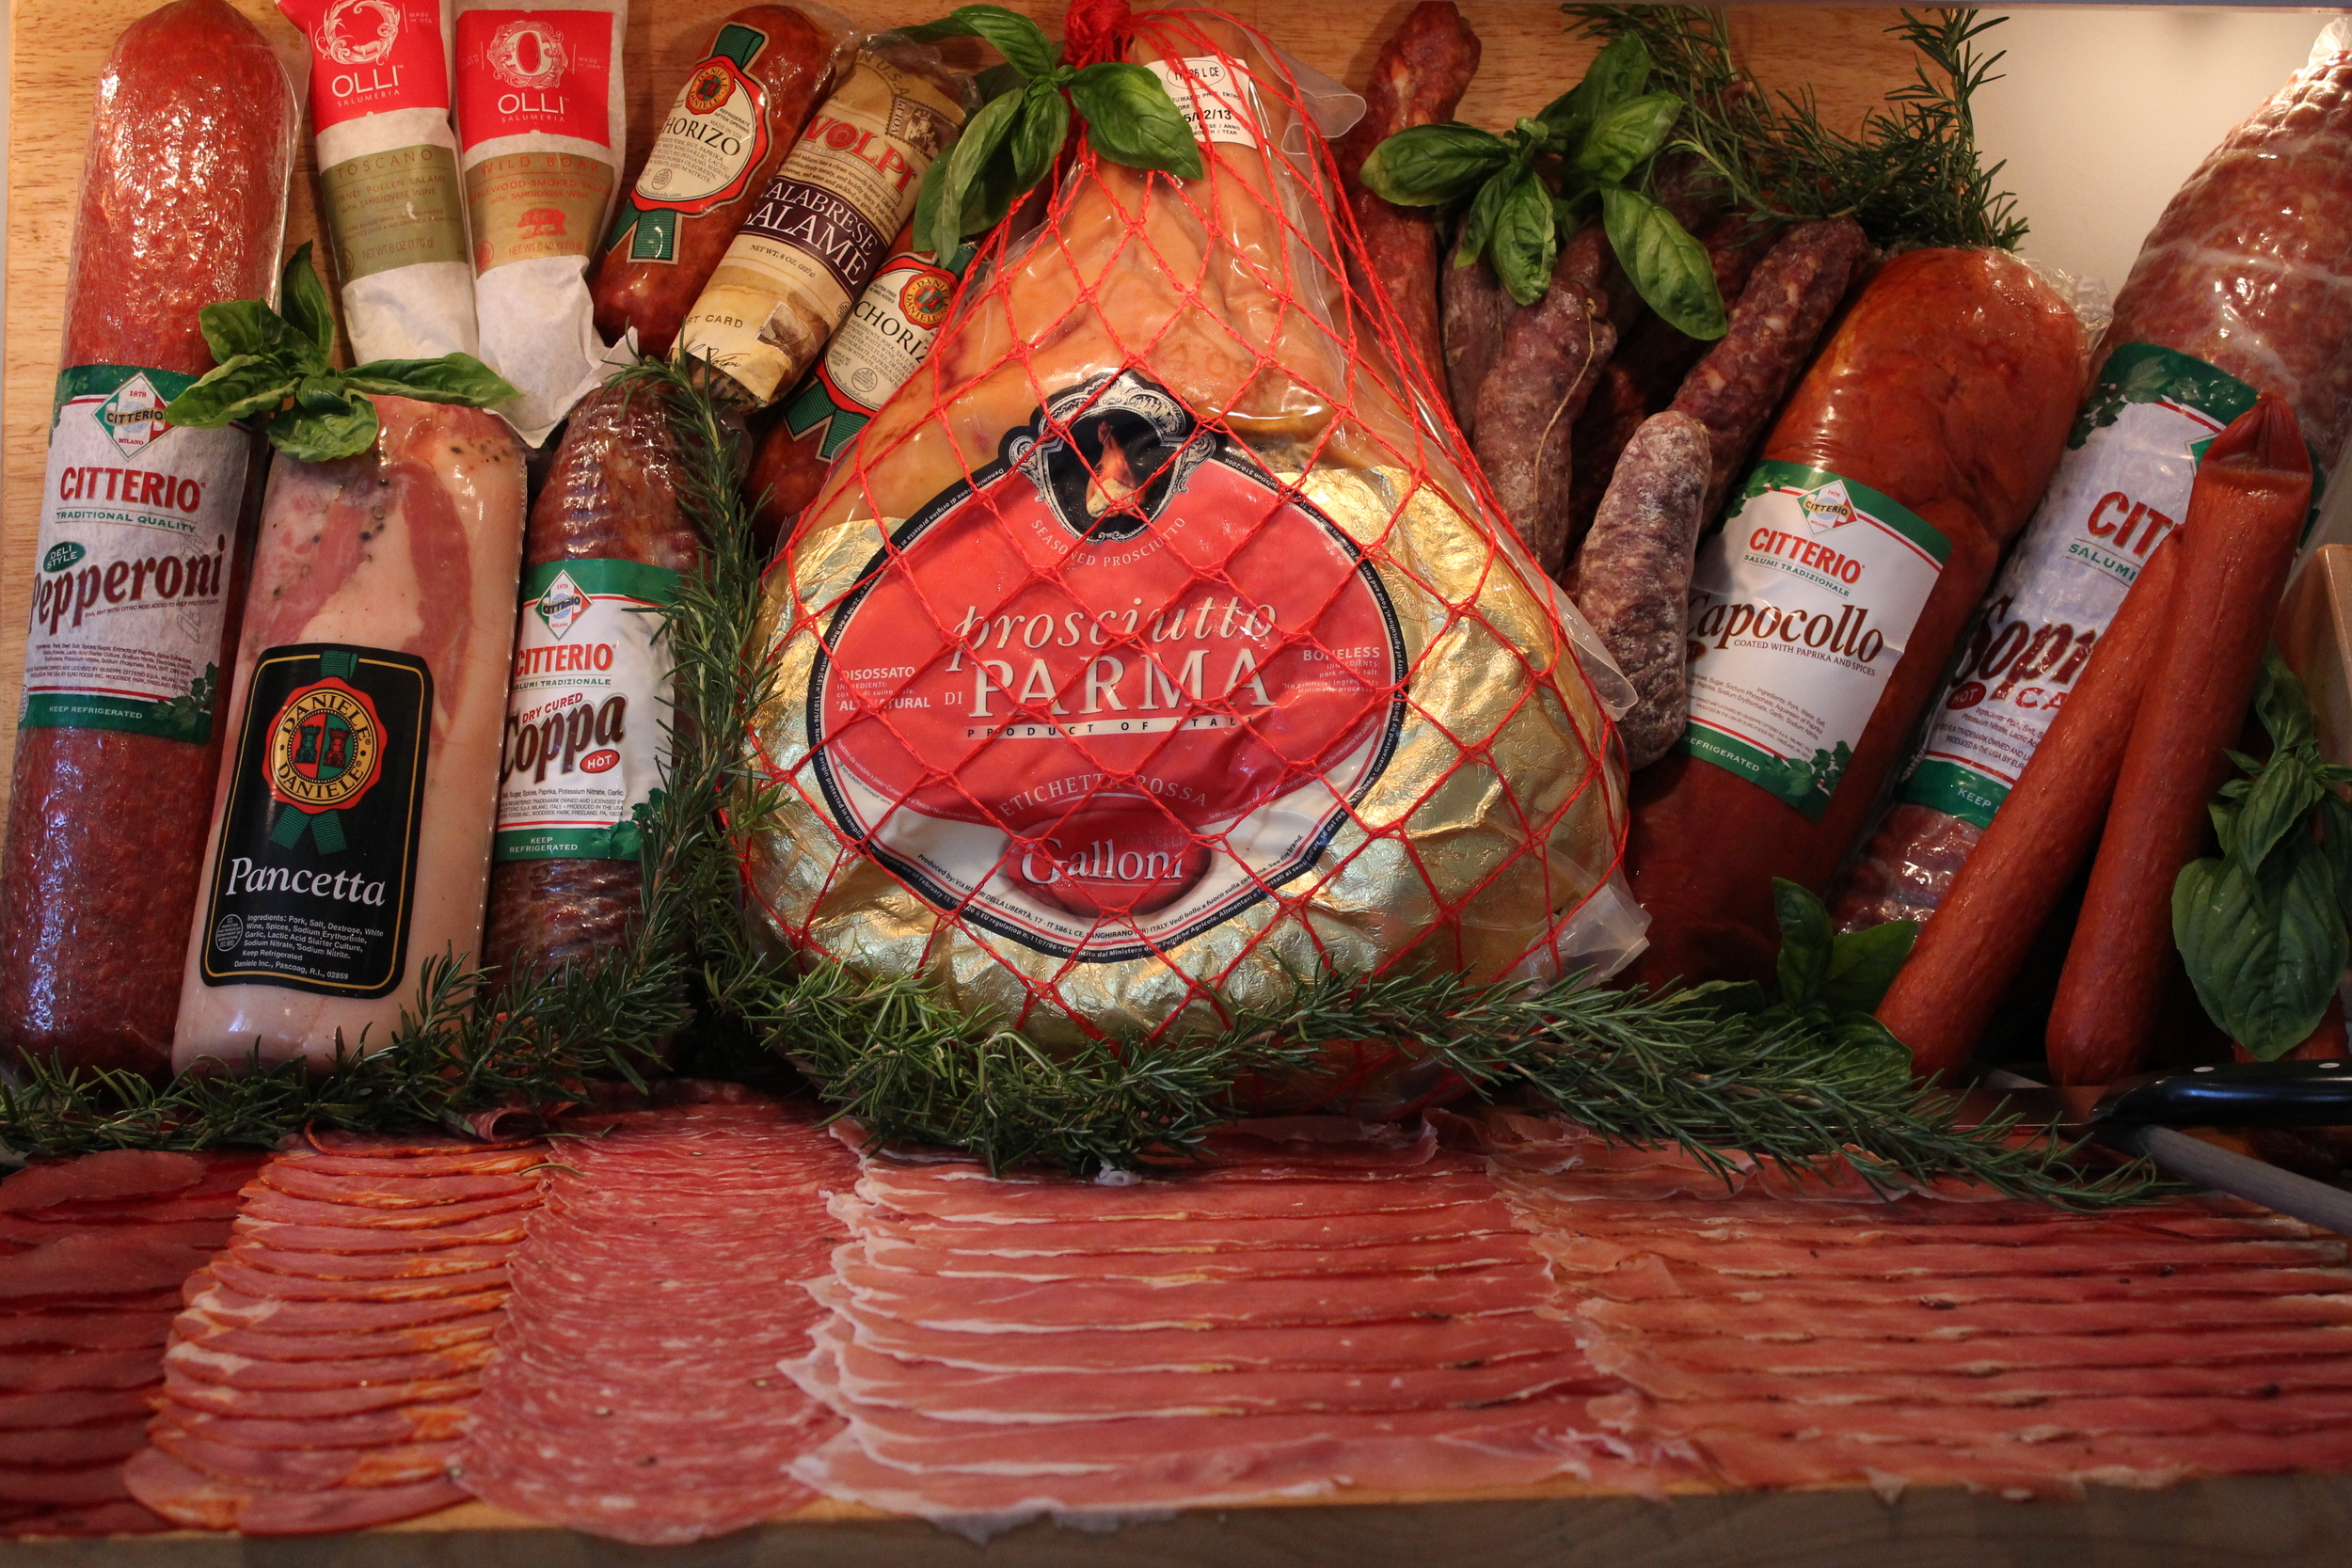 We offer Prosciutto di Parma, Porchetta Toscana, Speck Alto Adige and more fine imported Italian Charcuterie  .